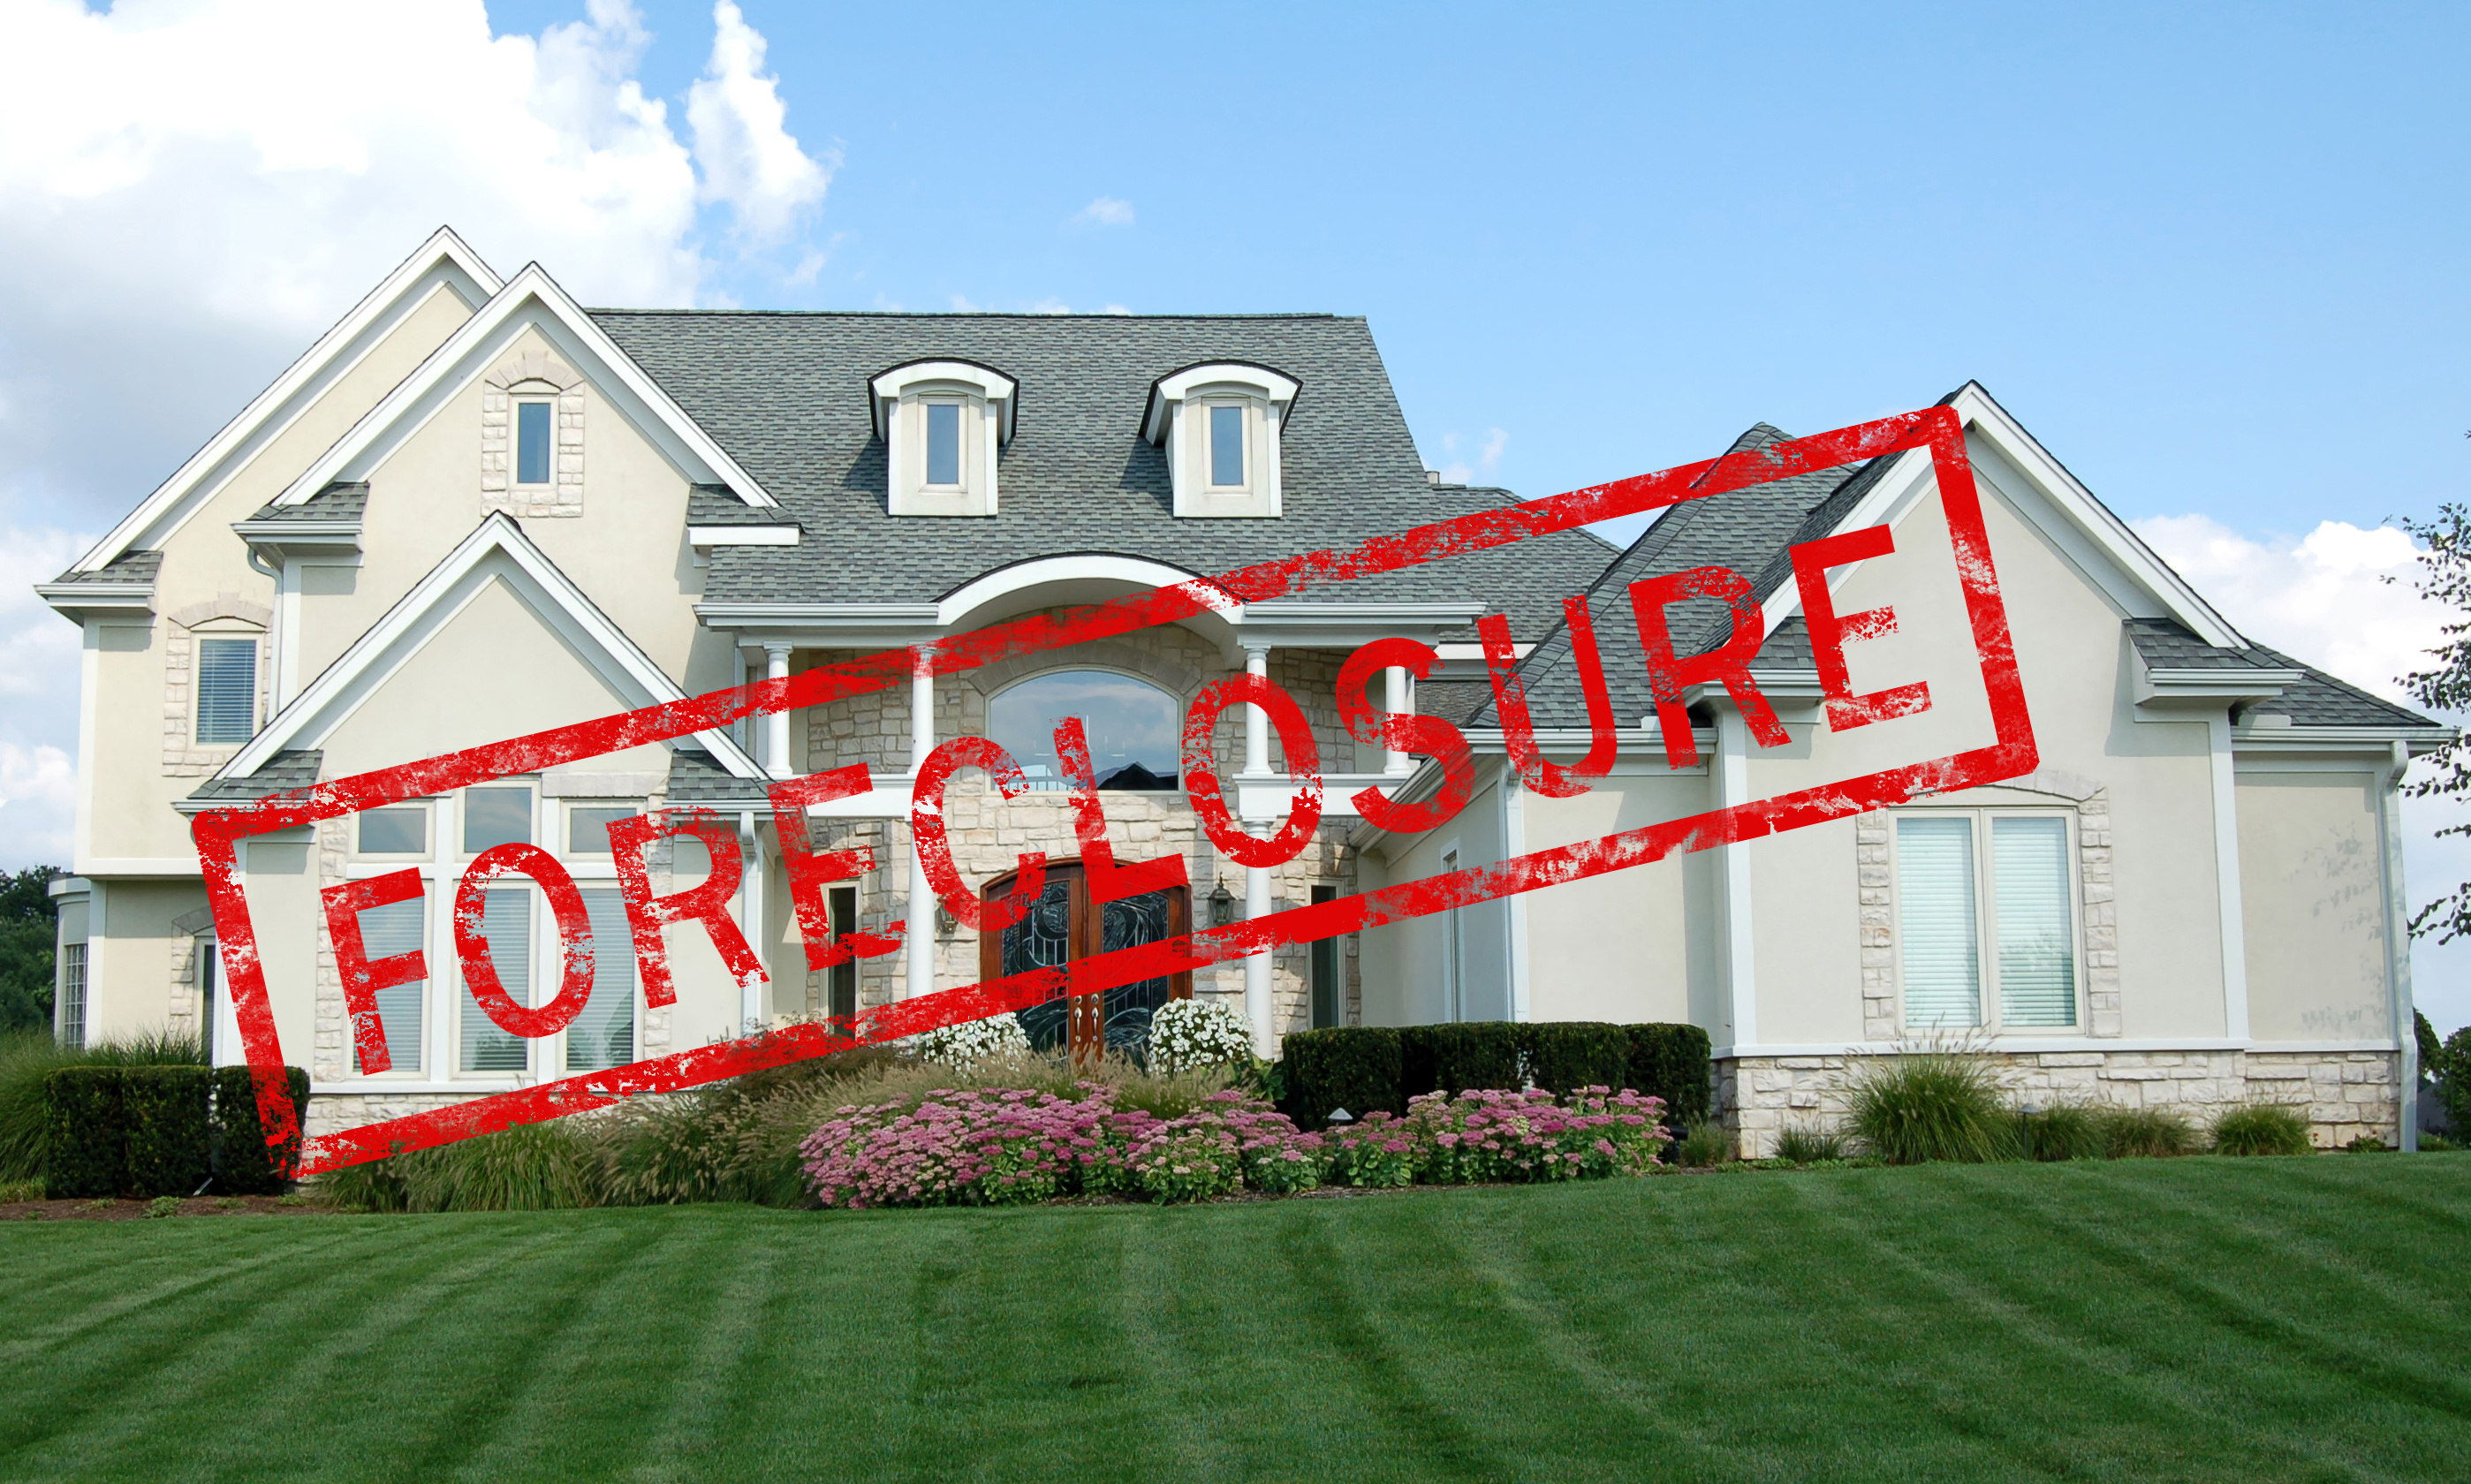 Call Gold Coast Appraisal Group LLC to order appraisals of Bergen foreclosures